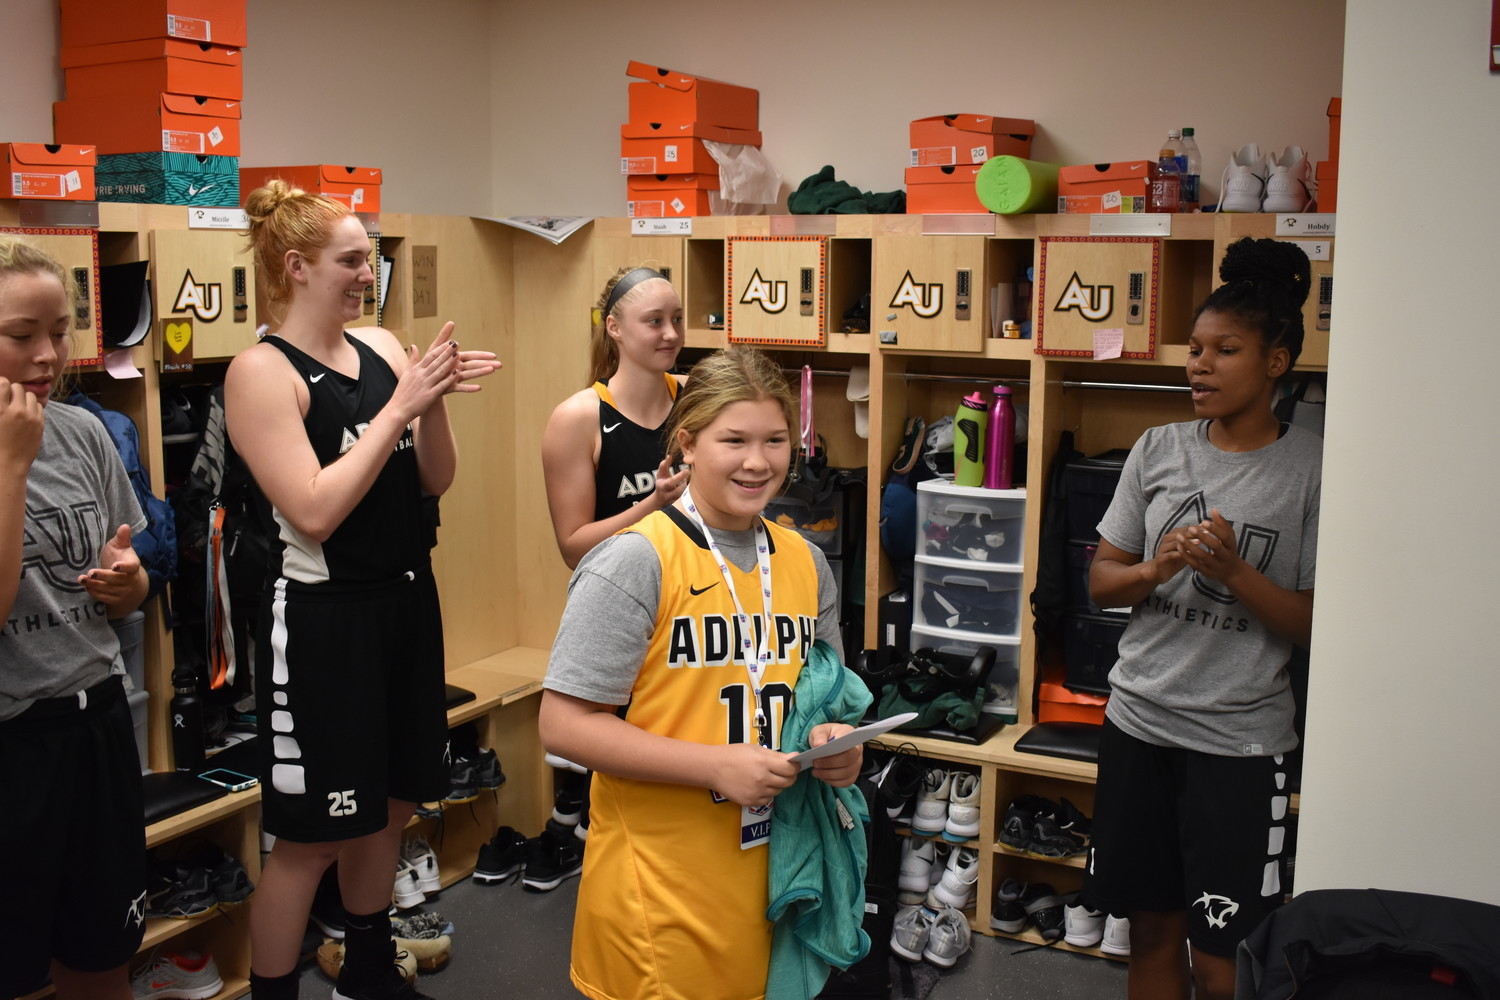 Onorato went to the locker room, where she received her own locker.